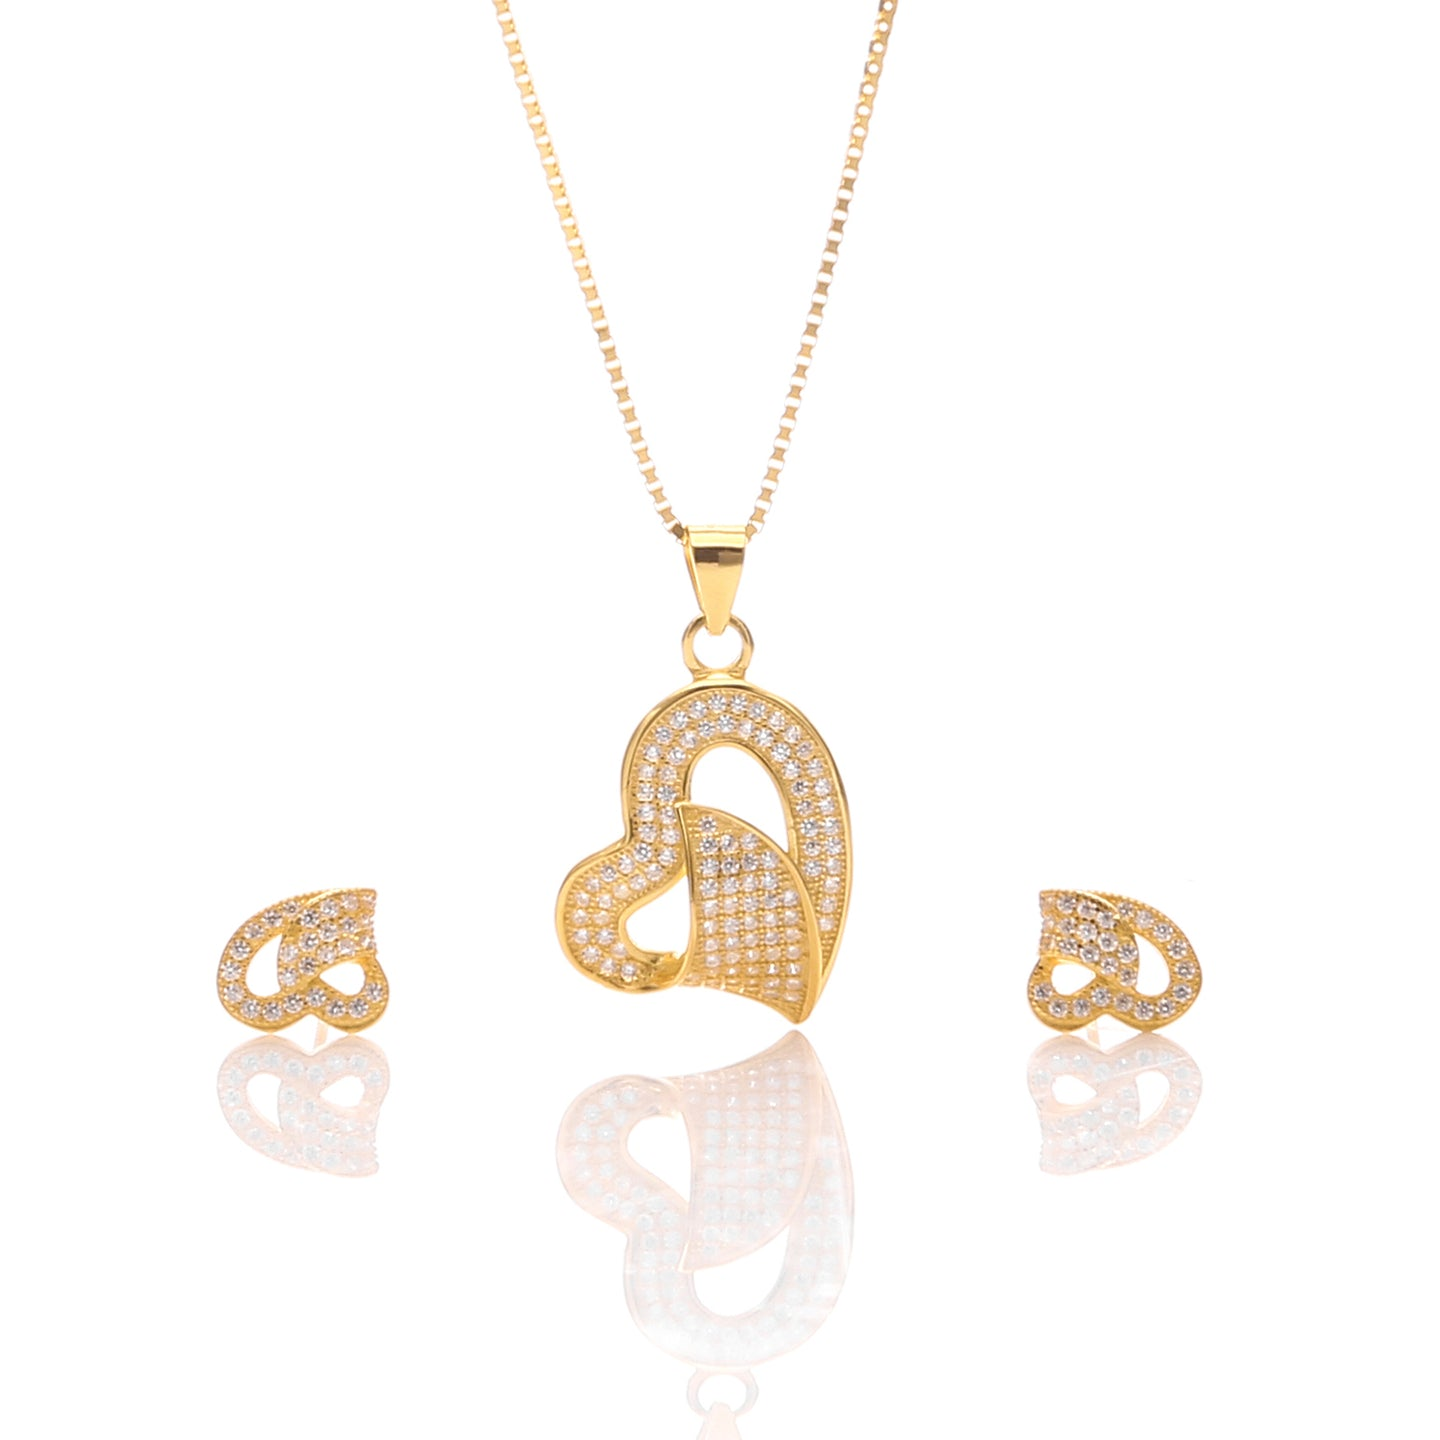 Classic One Sided Bent Heart Shaped Pendant Necklace and Earrings Set - ARJW1014GD - ARCADIO LIFESTYLE